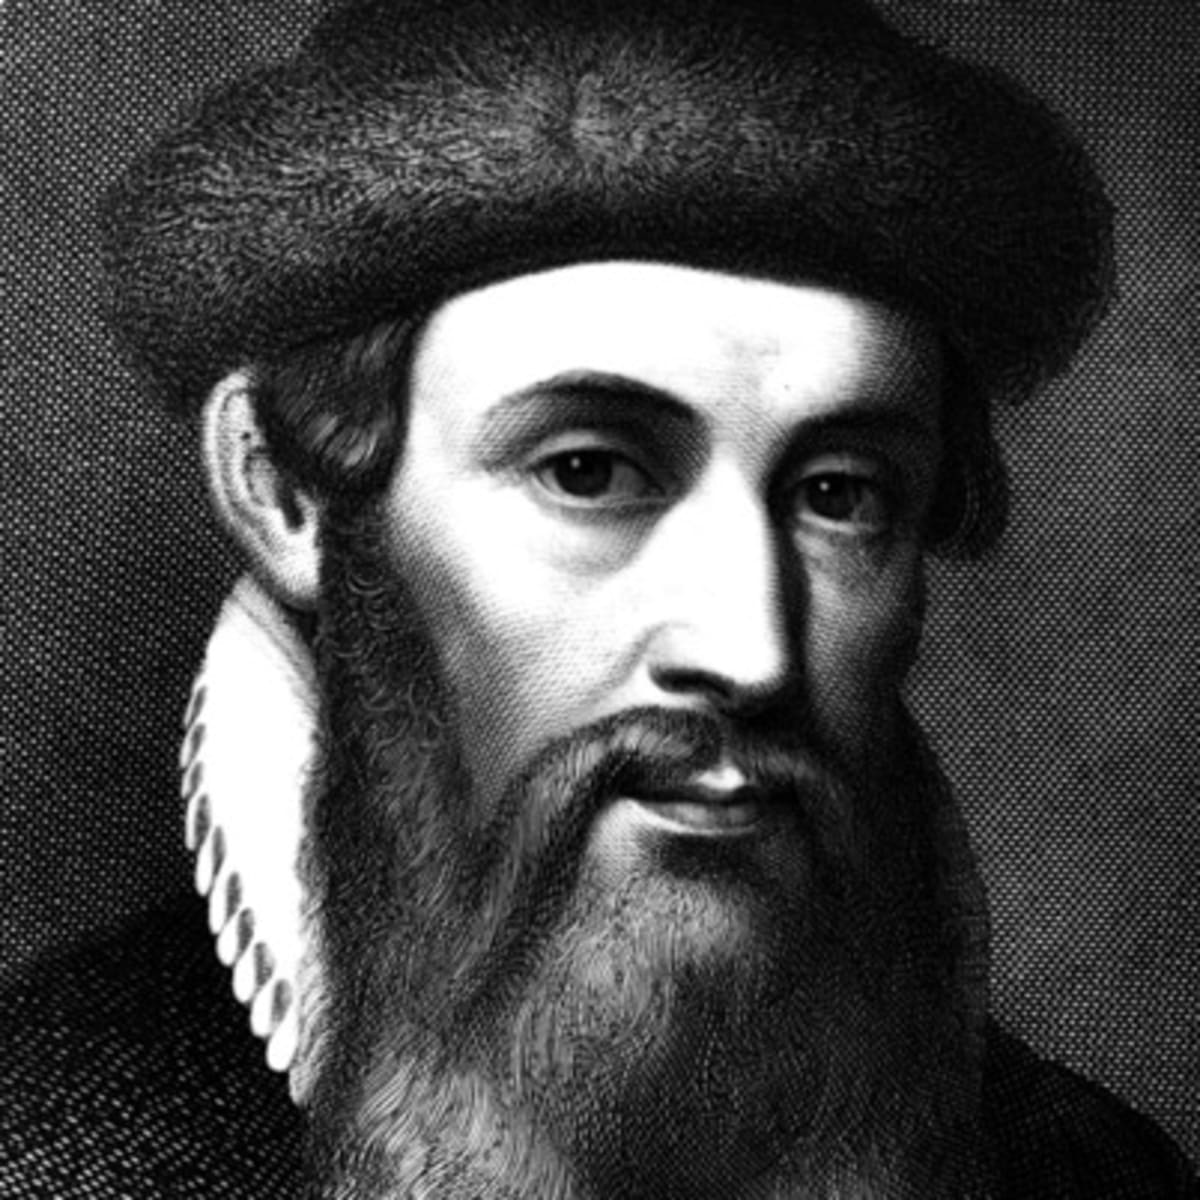 Johannes Gutenberg Printing Press Inventions Facts Biography